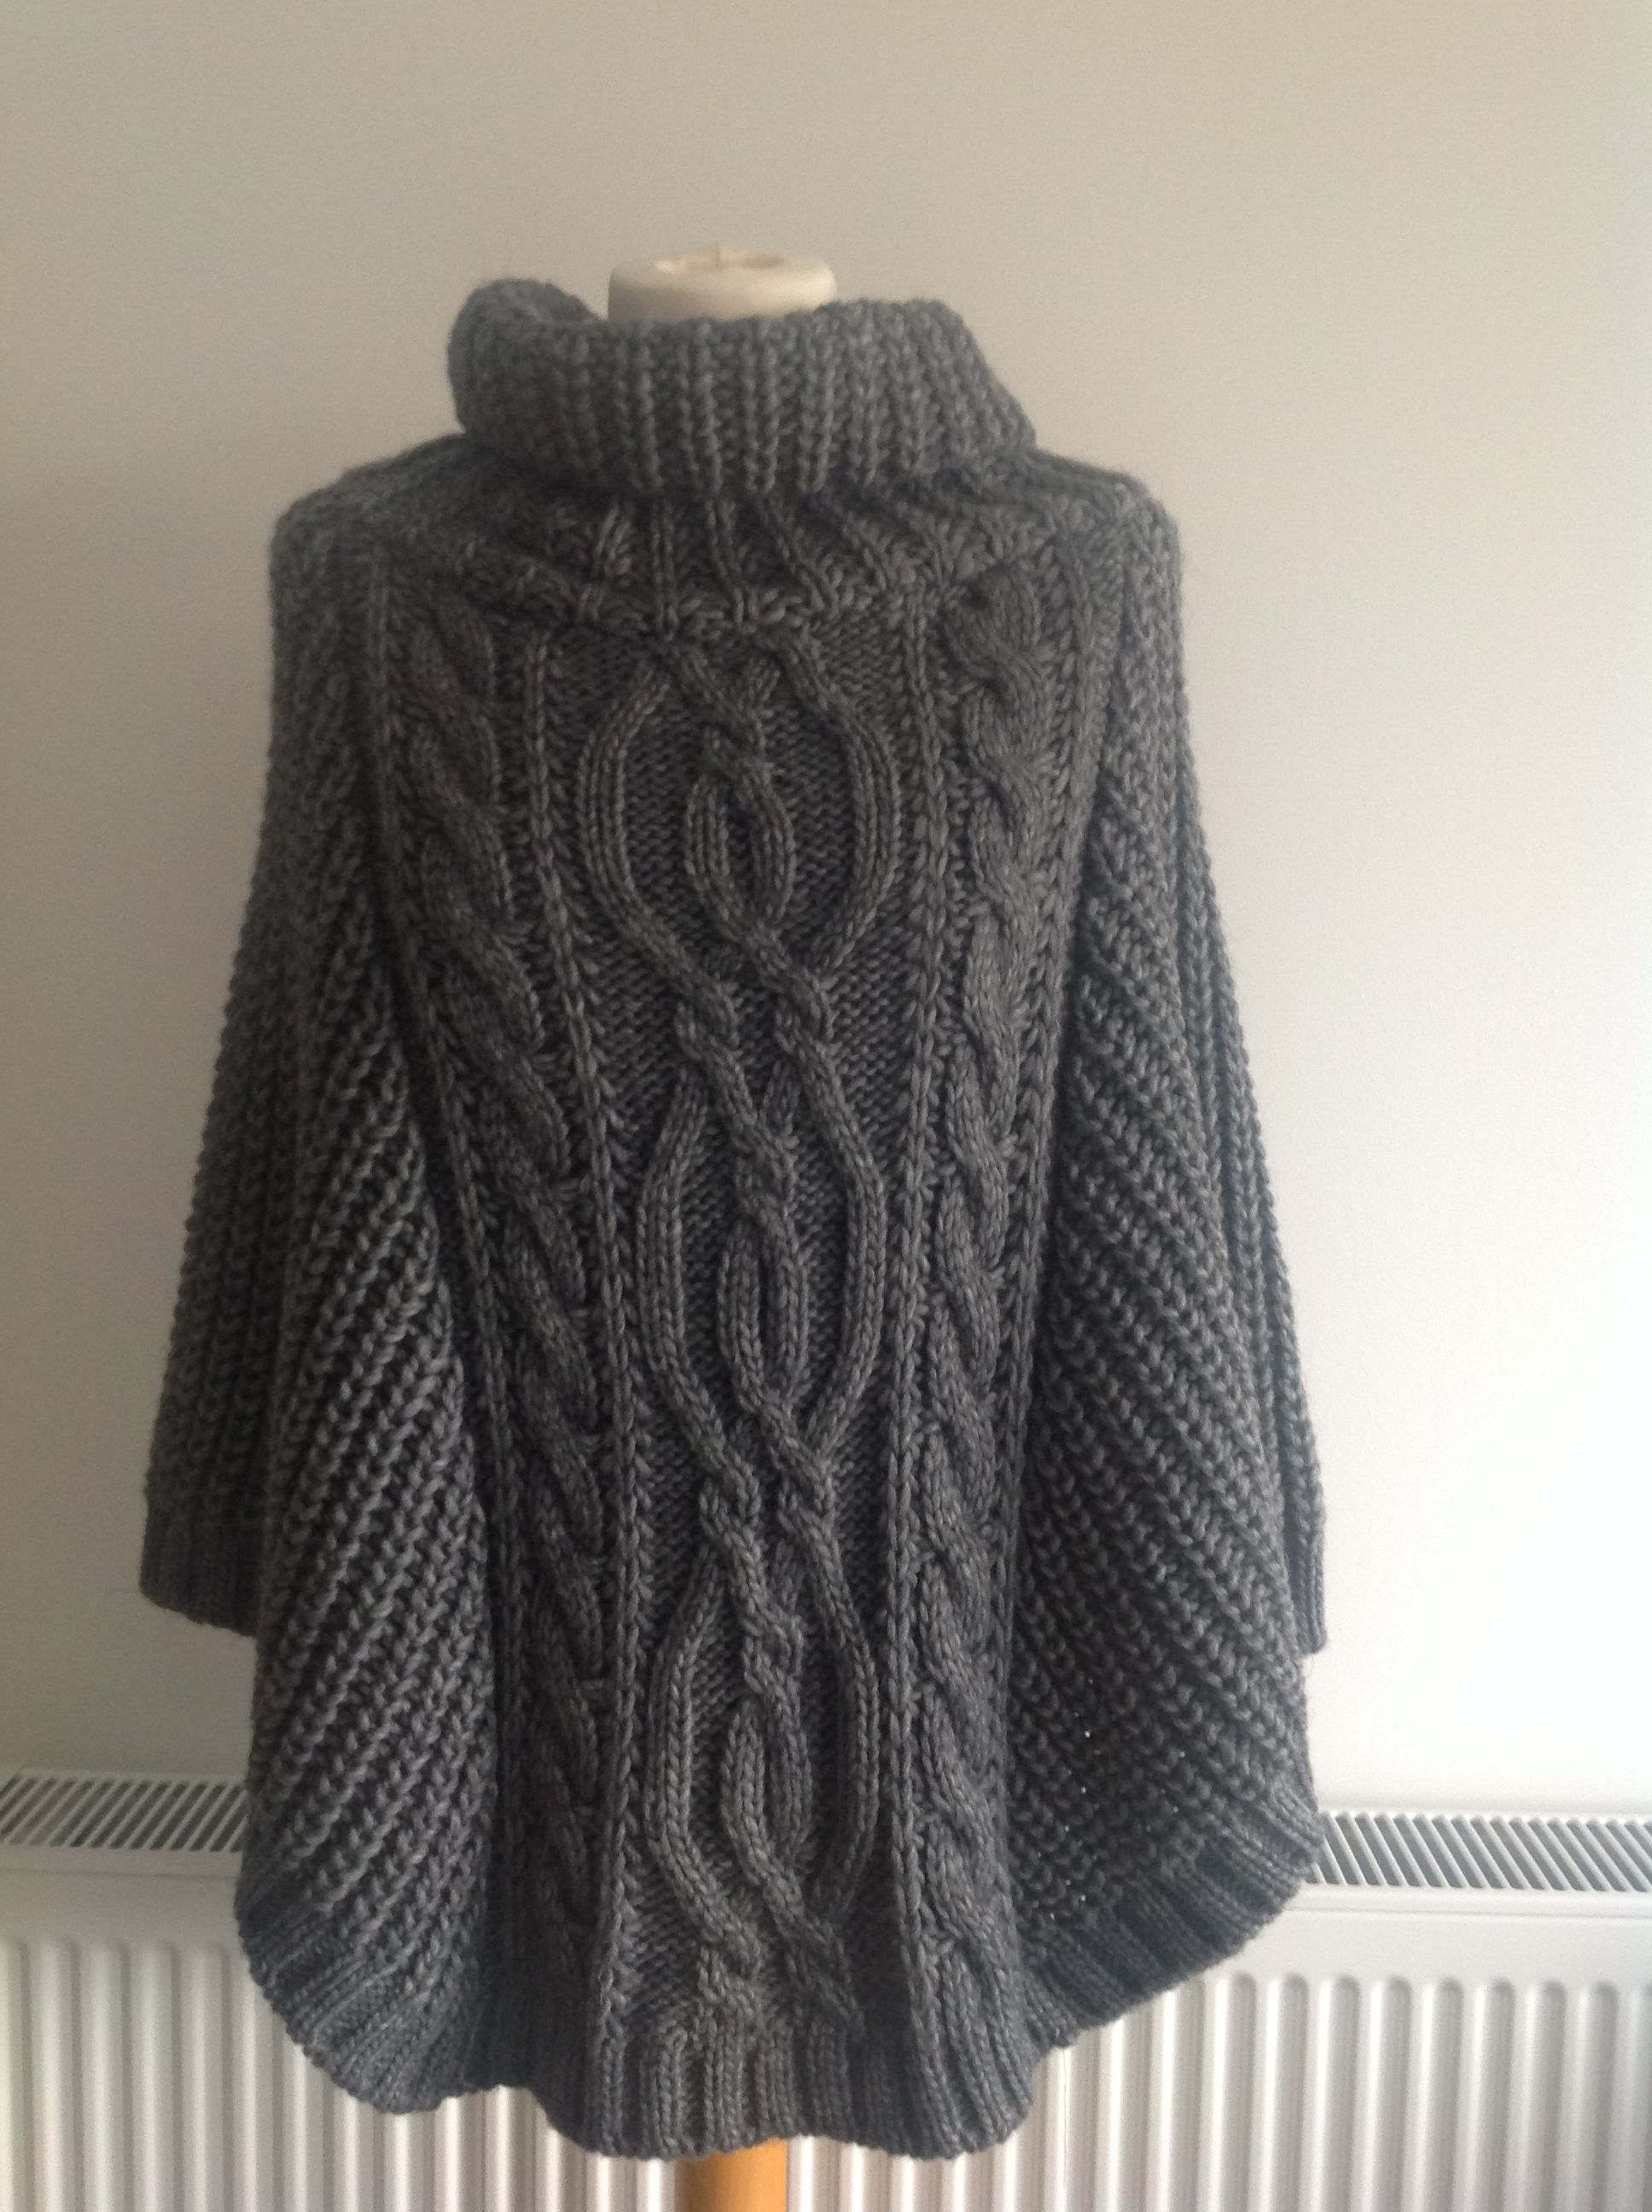 Knitted Ponchos - http://theponcho.com/blog/ | knitted | Pinterest ...